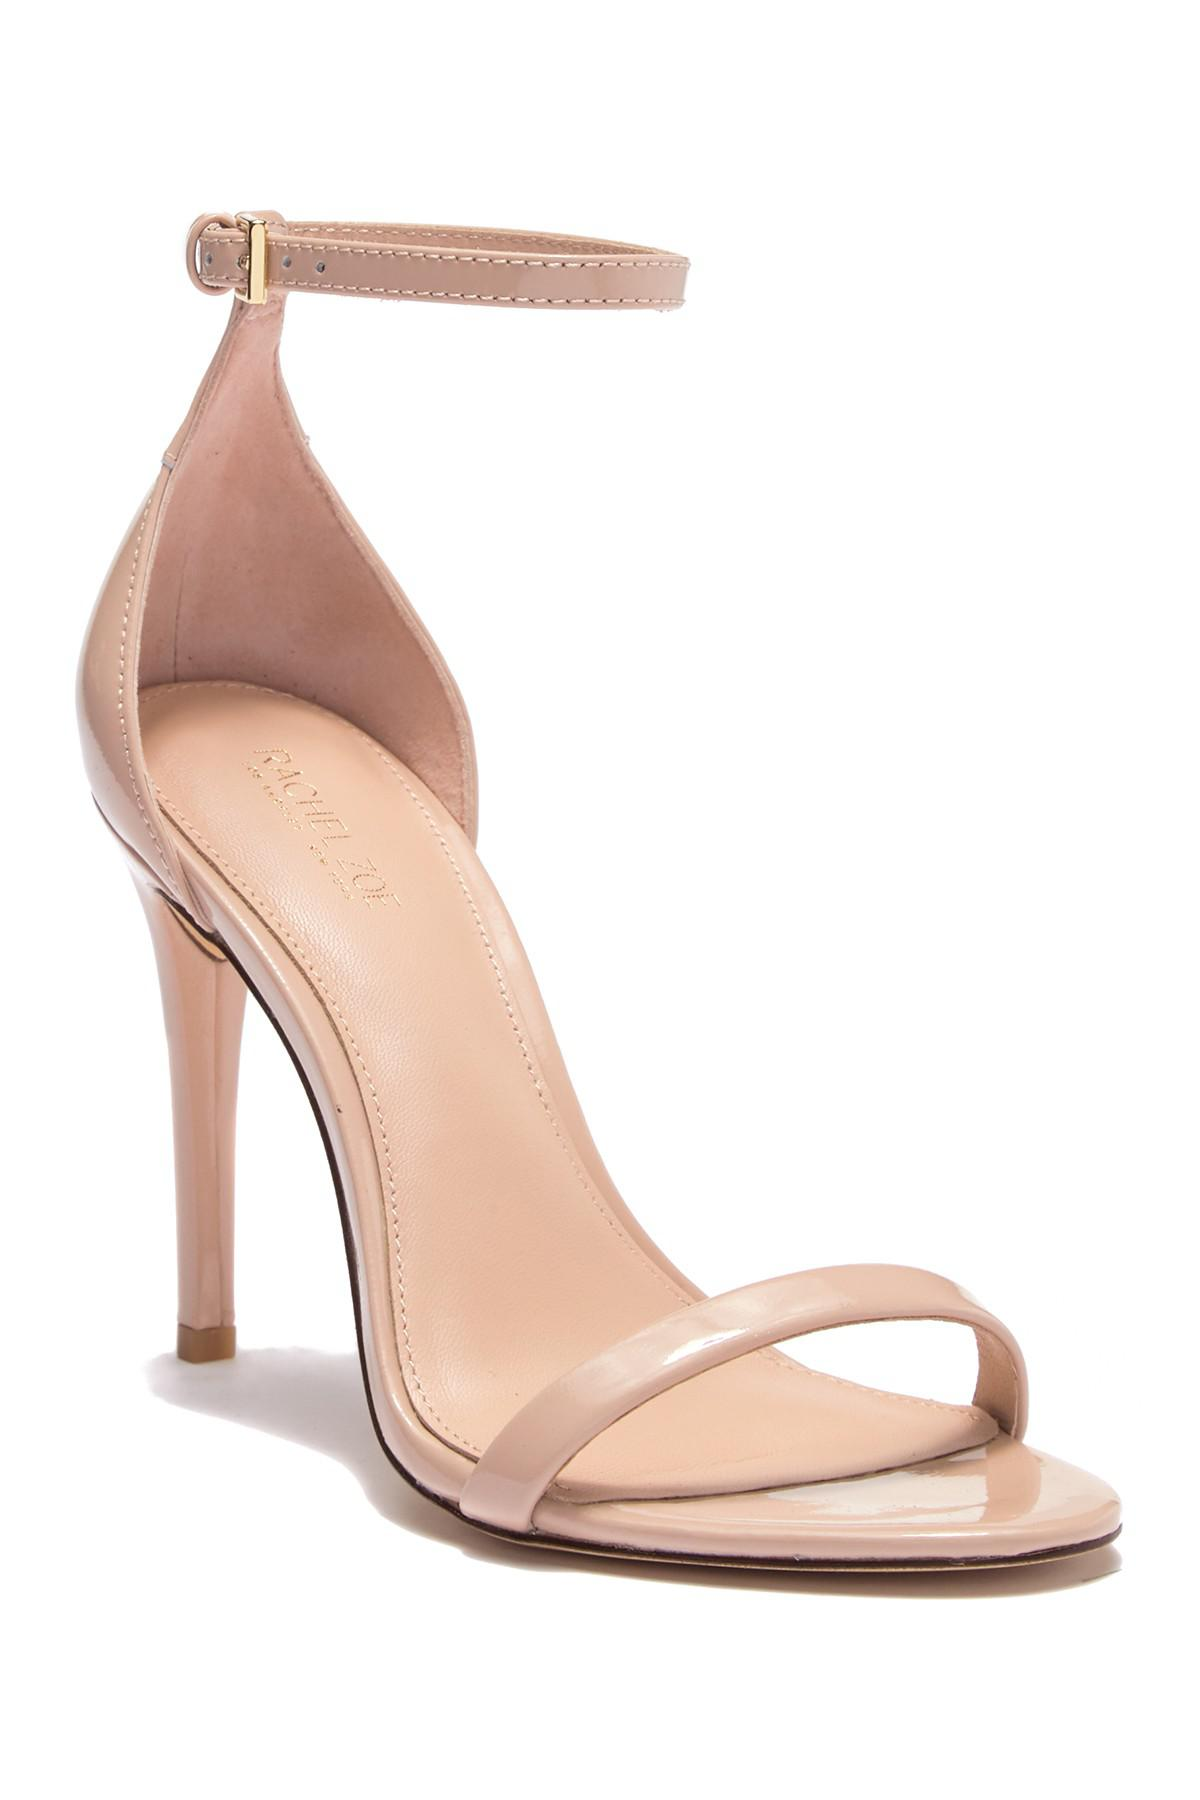 36eb8b375d0 Lyst - Rachel Zoe Ema Patent Leather Stiletto Sandal in Natural